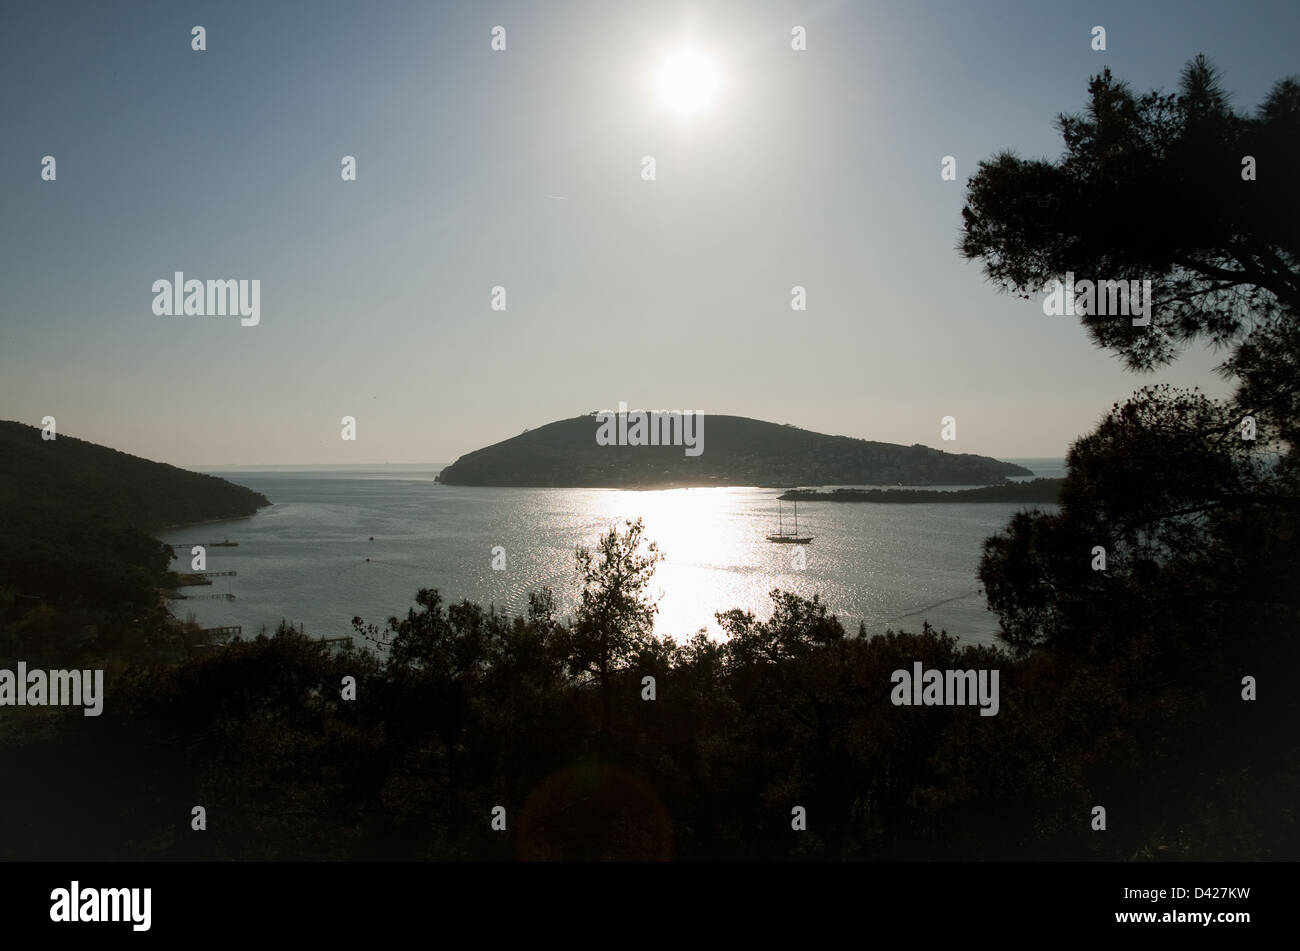 Heybeliada, Istanbul, Turkey, view of the neighboring island of Buyukada Heybeliada - Stock Image